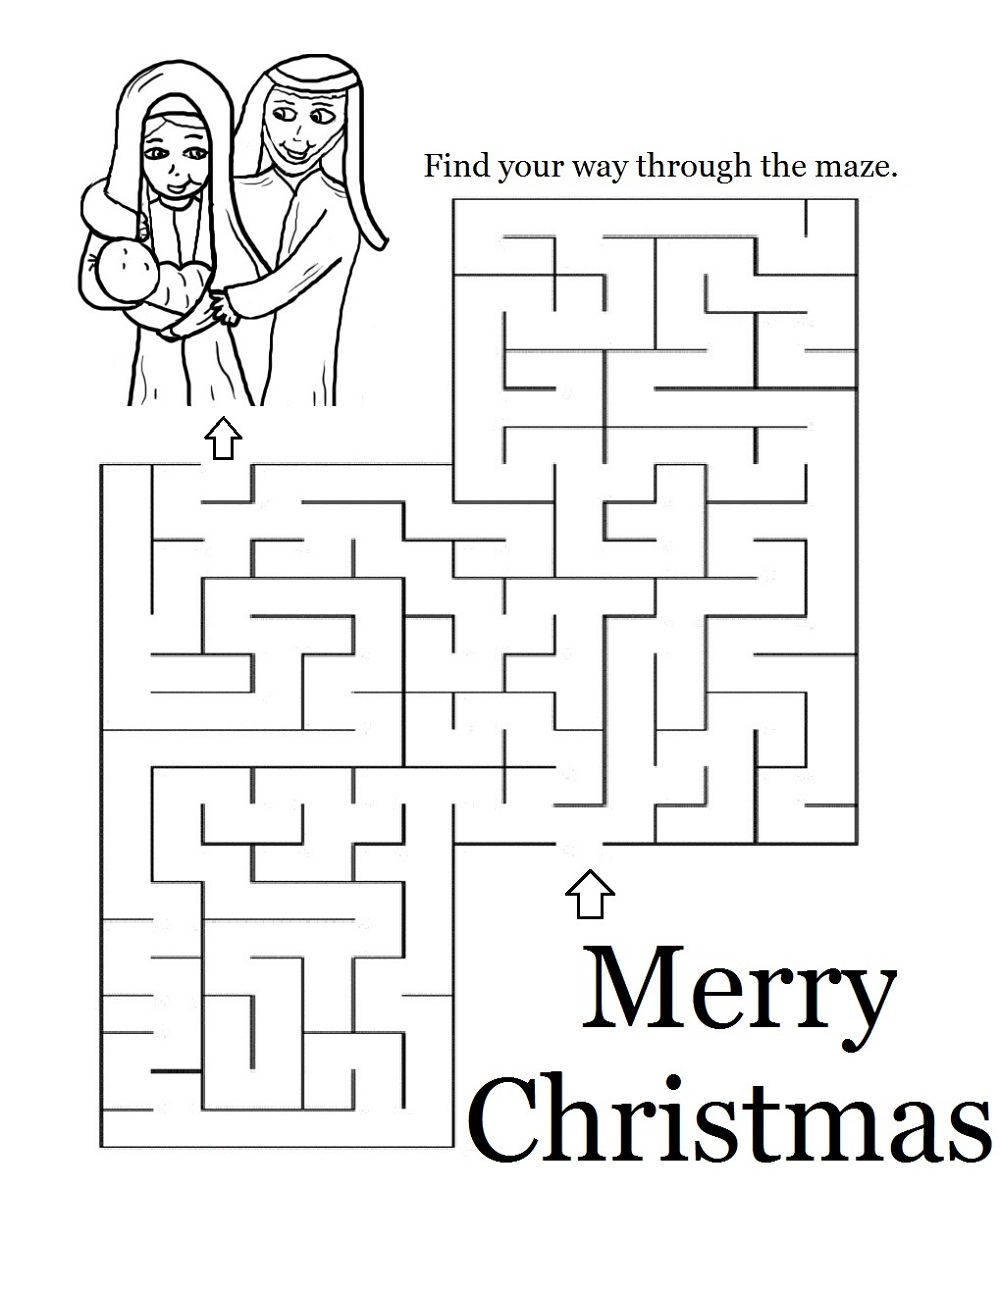 Printable Activities For 9 Year Olds Maze